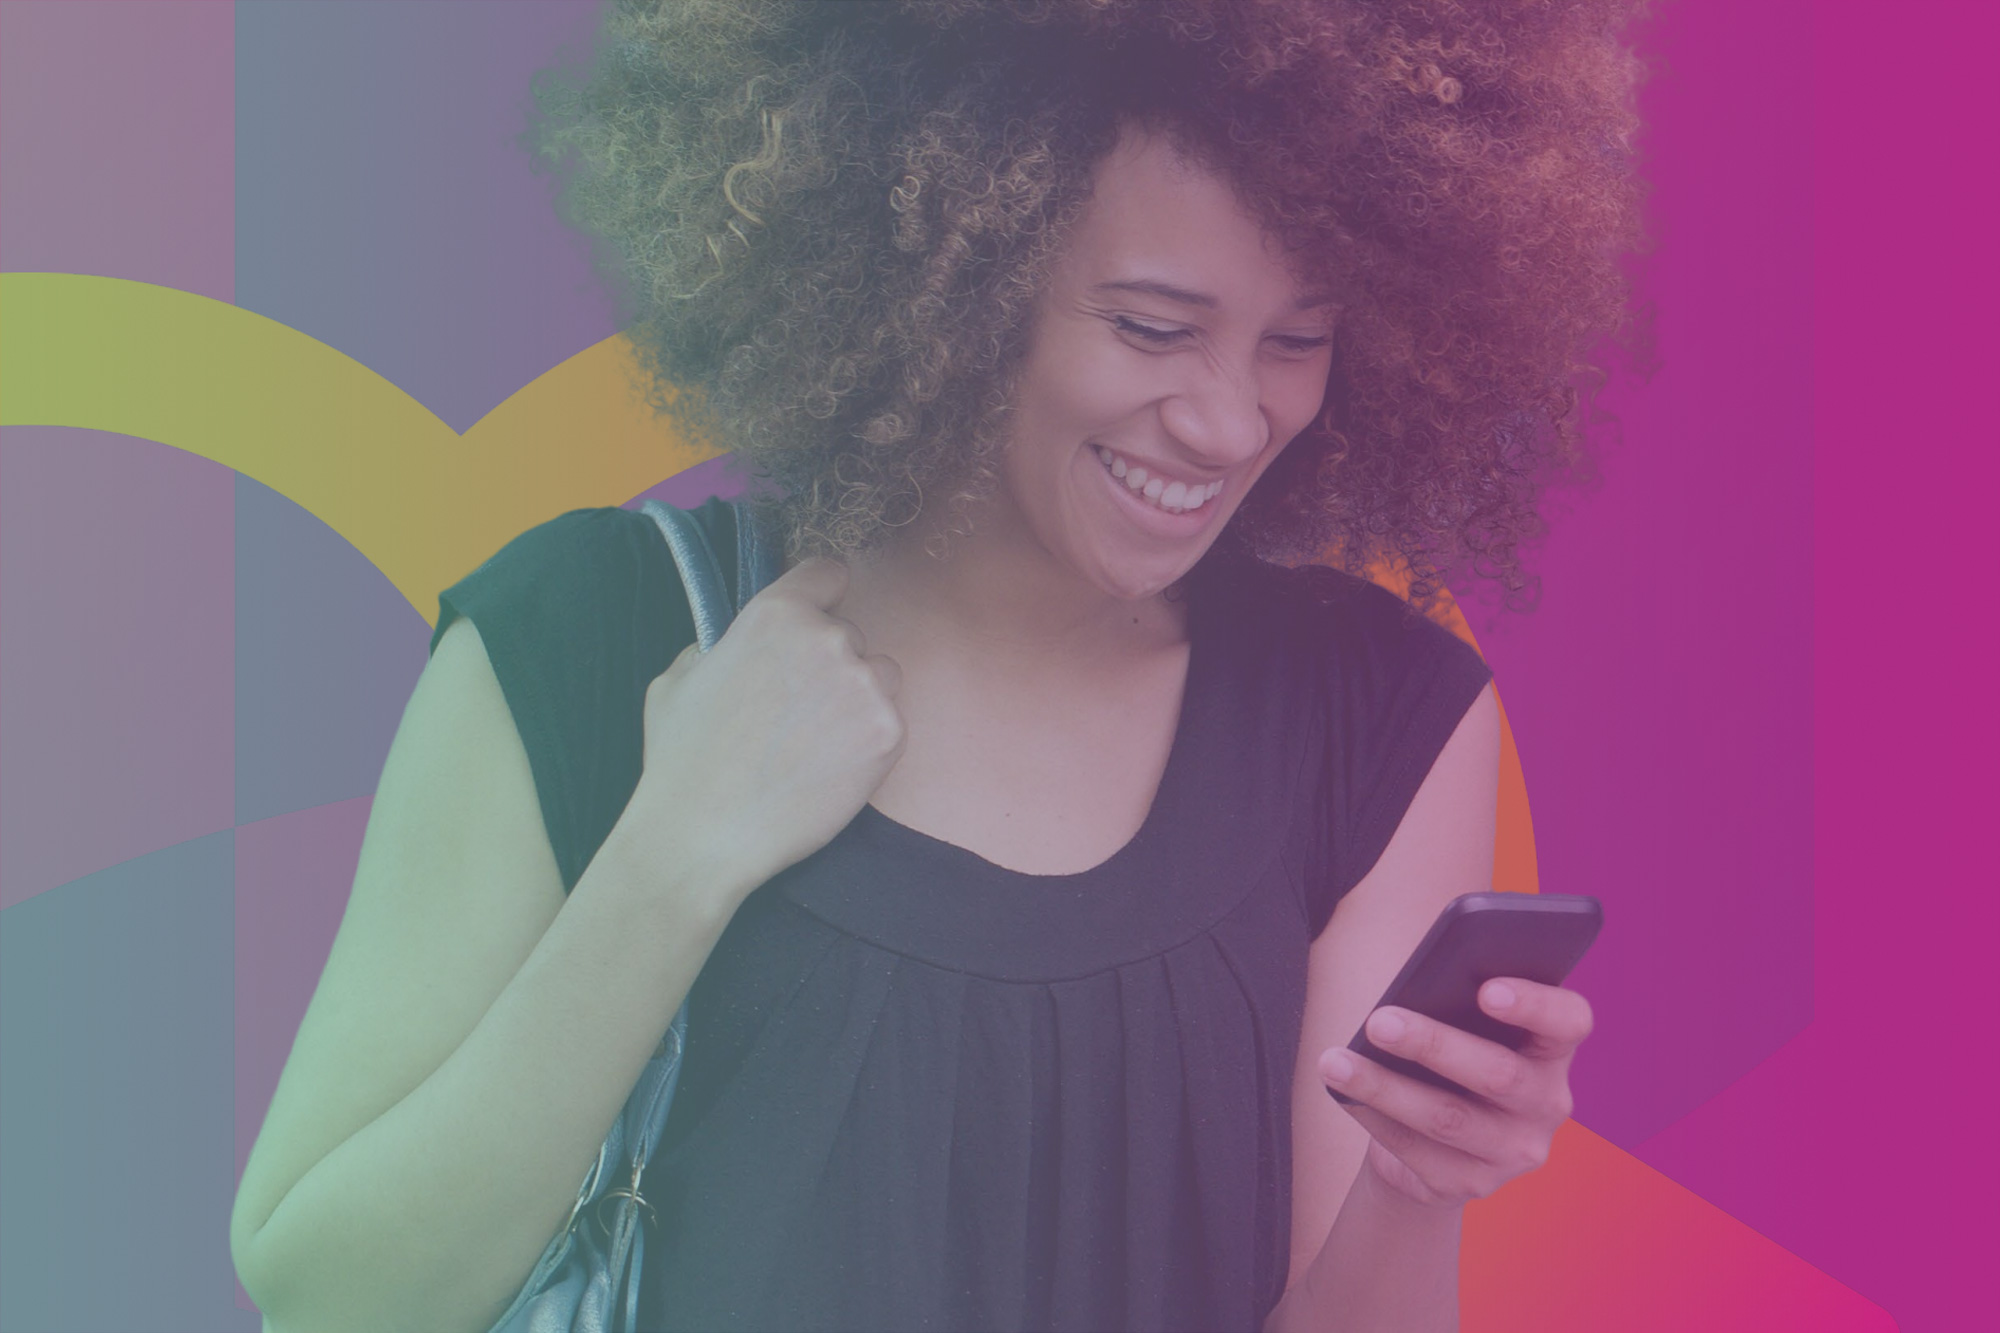 67% of Social Media Consumers Aspire to be Paid Social Media Influencers